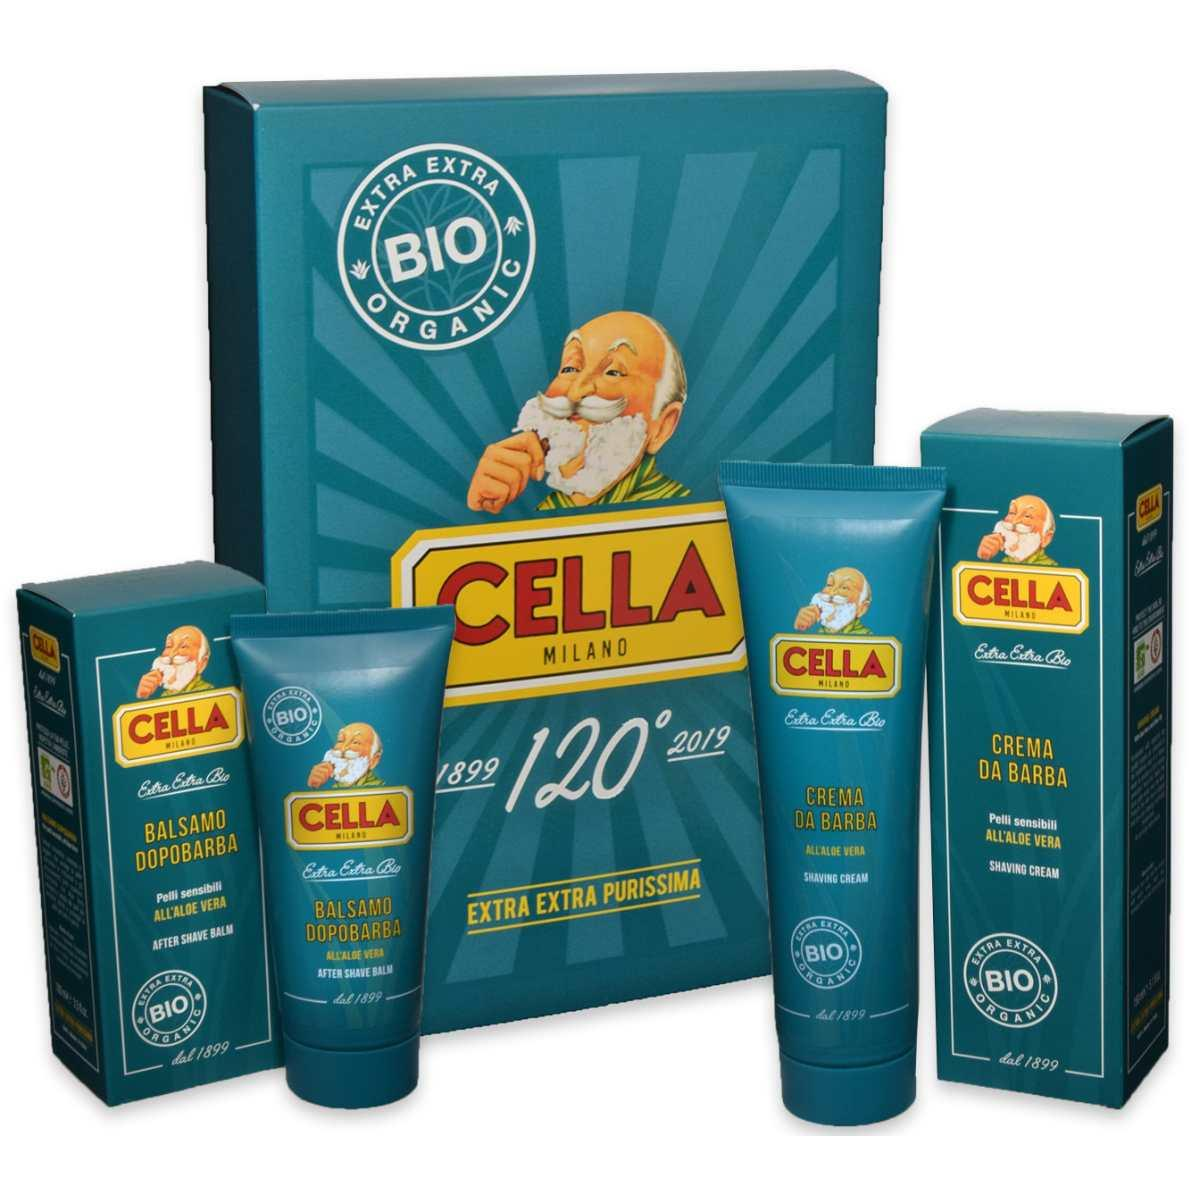 Cella milano crema da barba bio 150 ml + bls dopo barba 100 ml